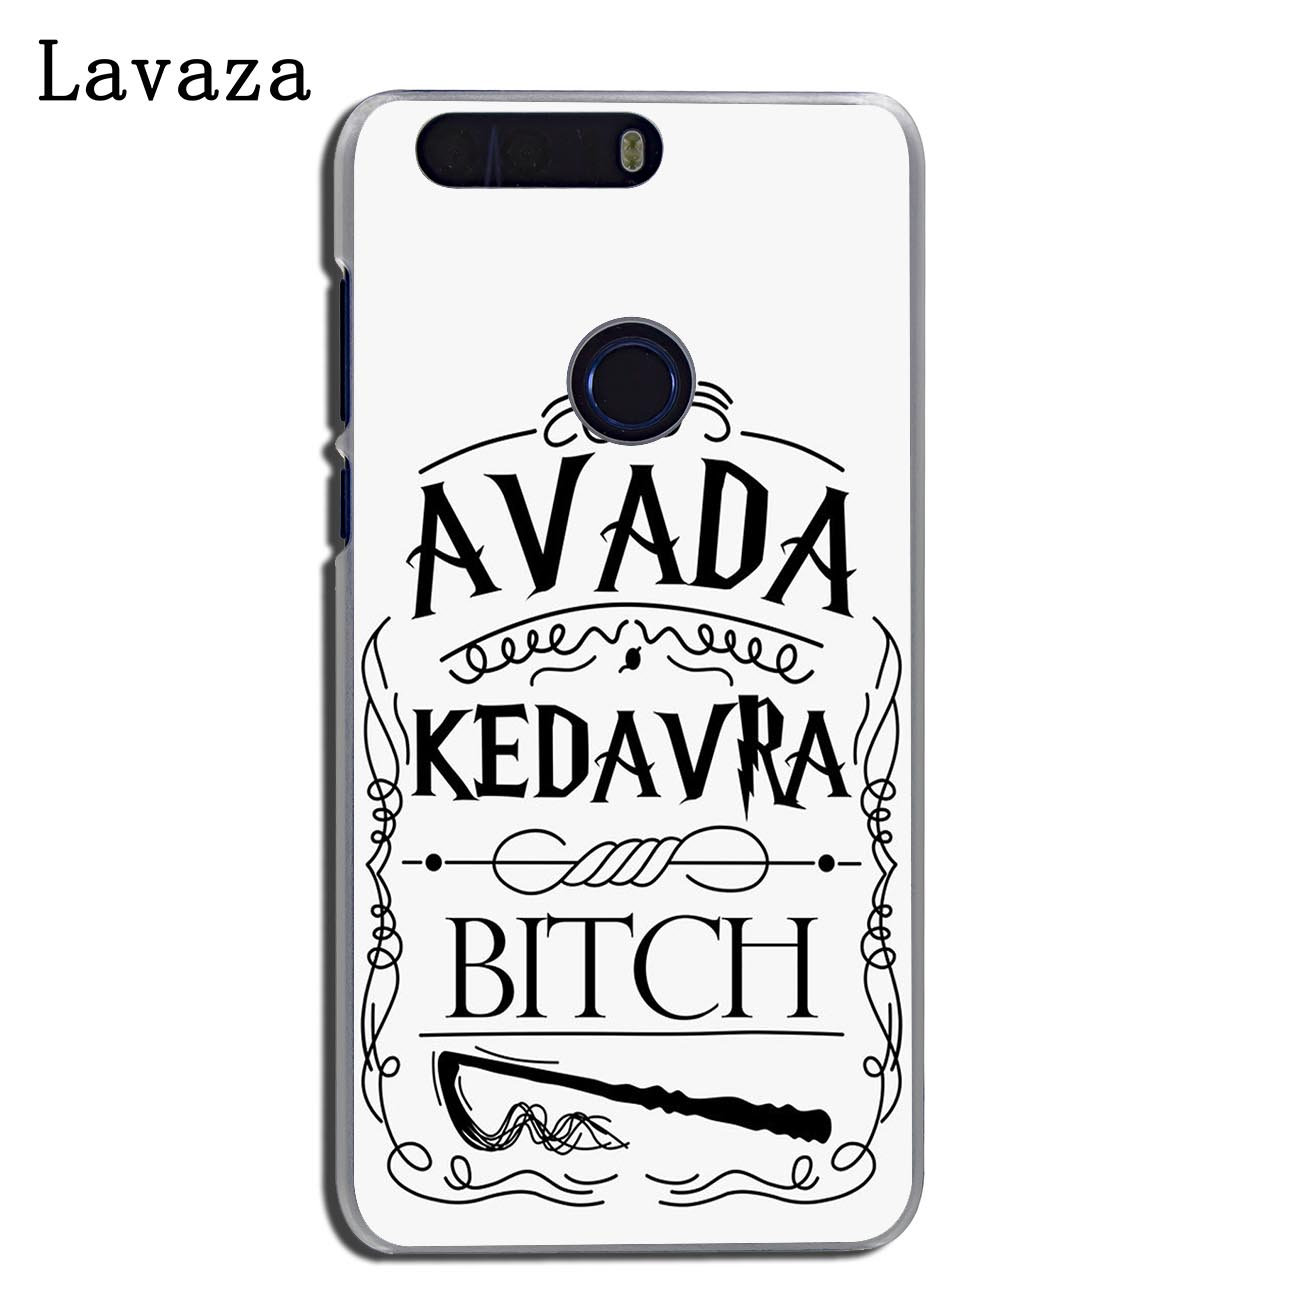 US $1 99 22% OFF|Lavaza Bitch mode on pink bitching Phone Case for Huawei  Y7 Y6 Prime Y5 2017 Y9 2018 Honor play 10 8C 8X 8 9 Lite 7X 7C 7A Pro-in